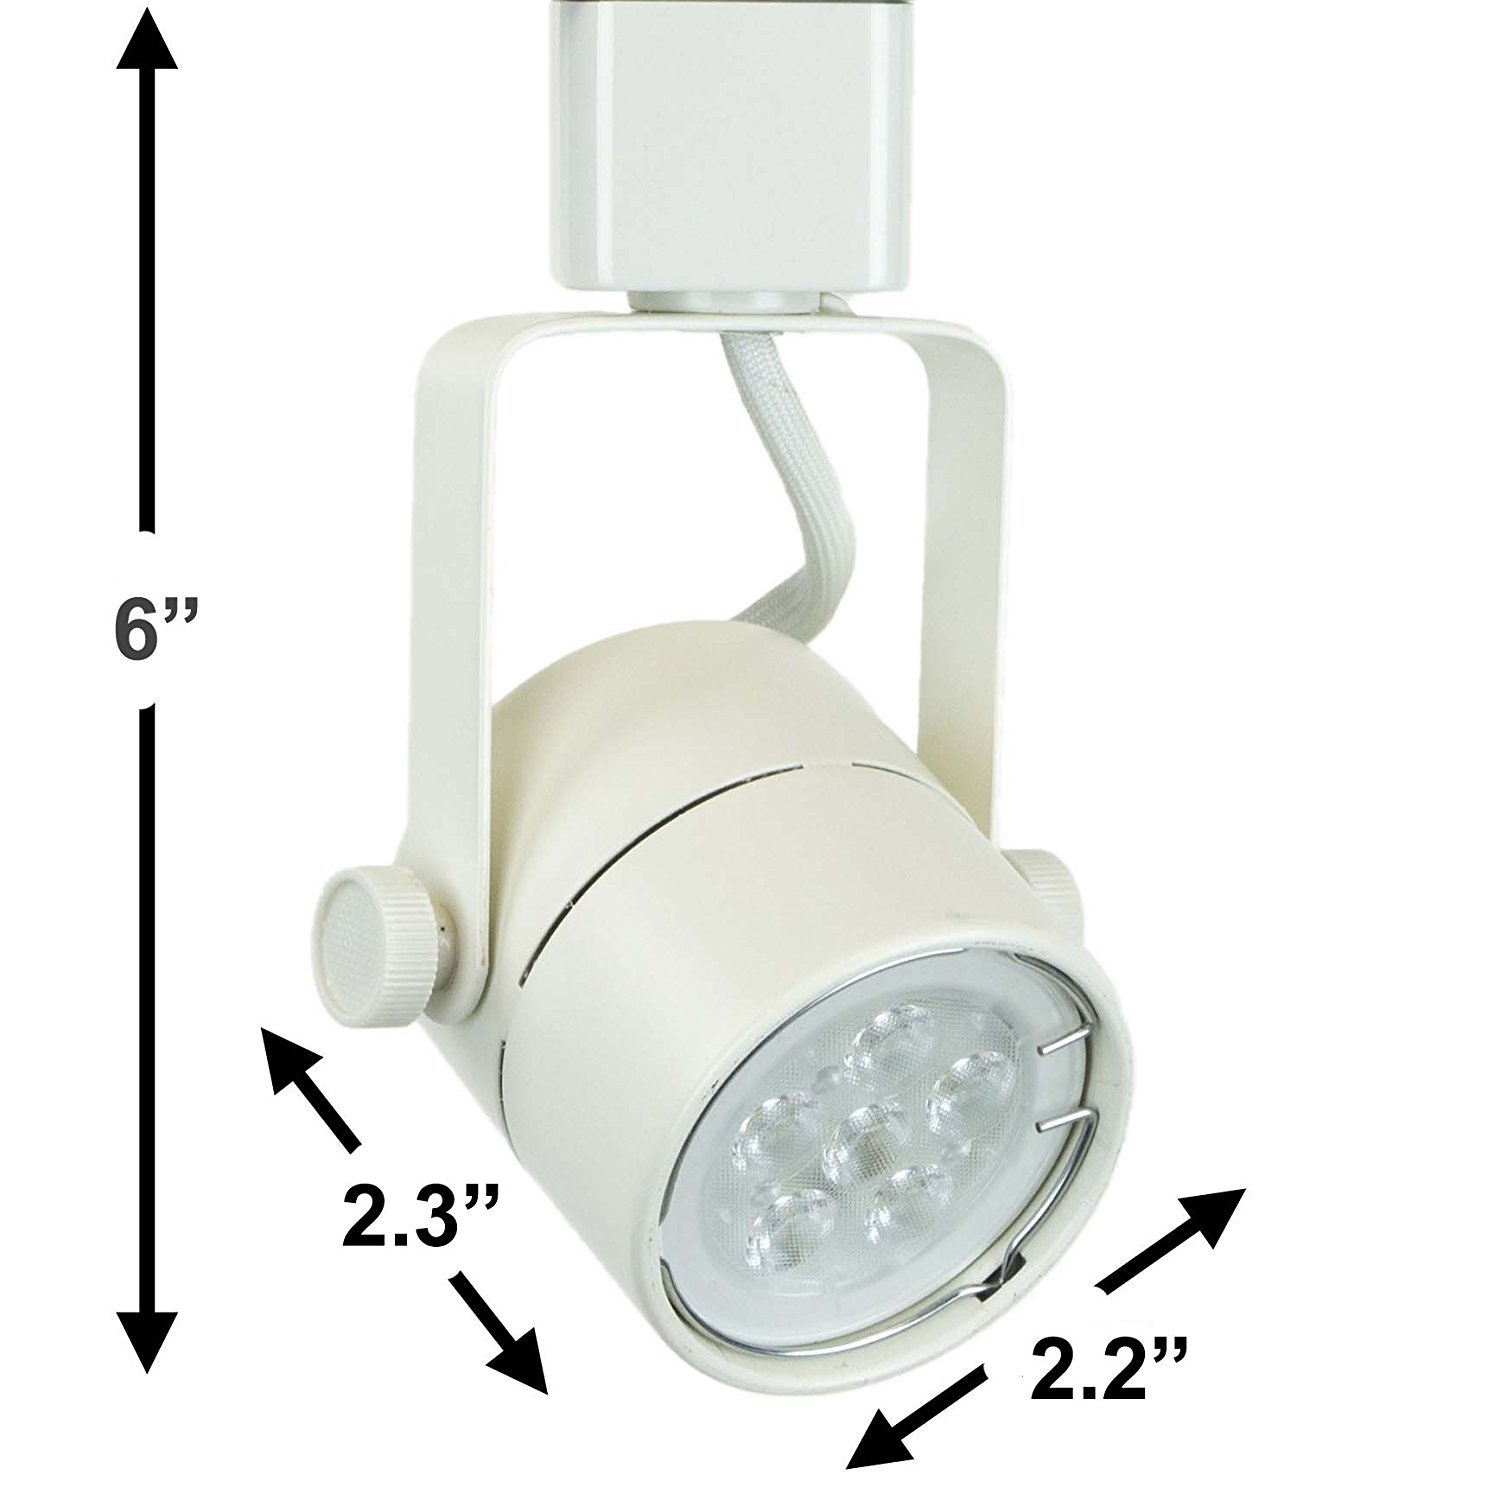 amazon track lighting. Direct-Lighting 50154 White GU10 Line Voltage Track Lighting Head - Amazon .com K